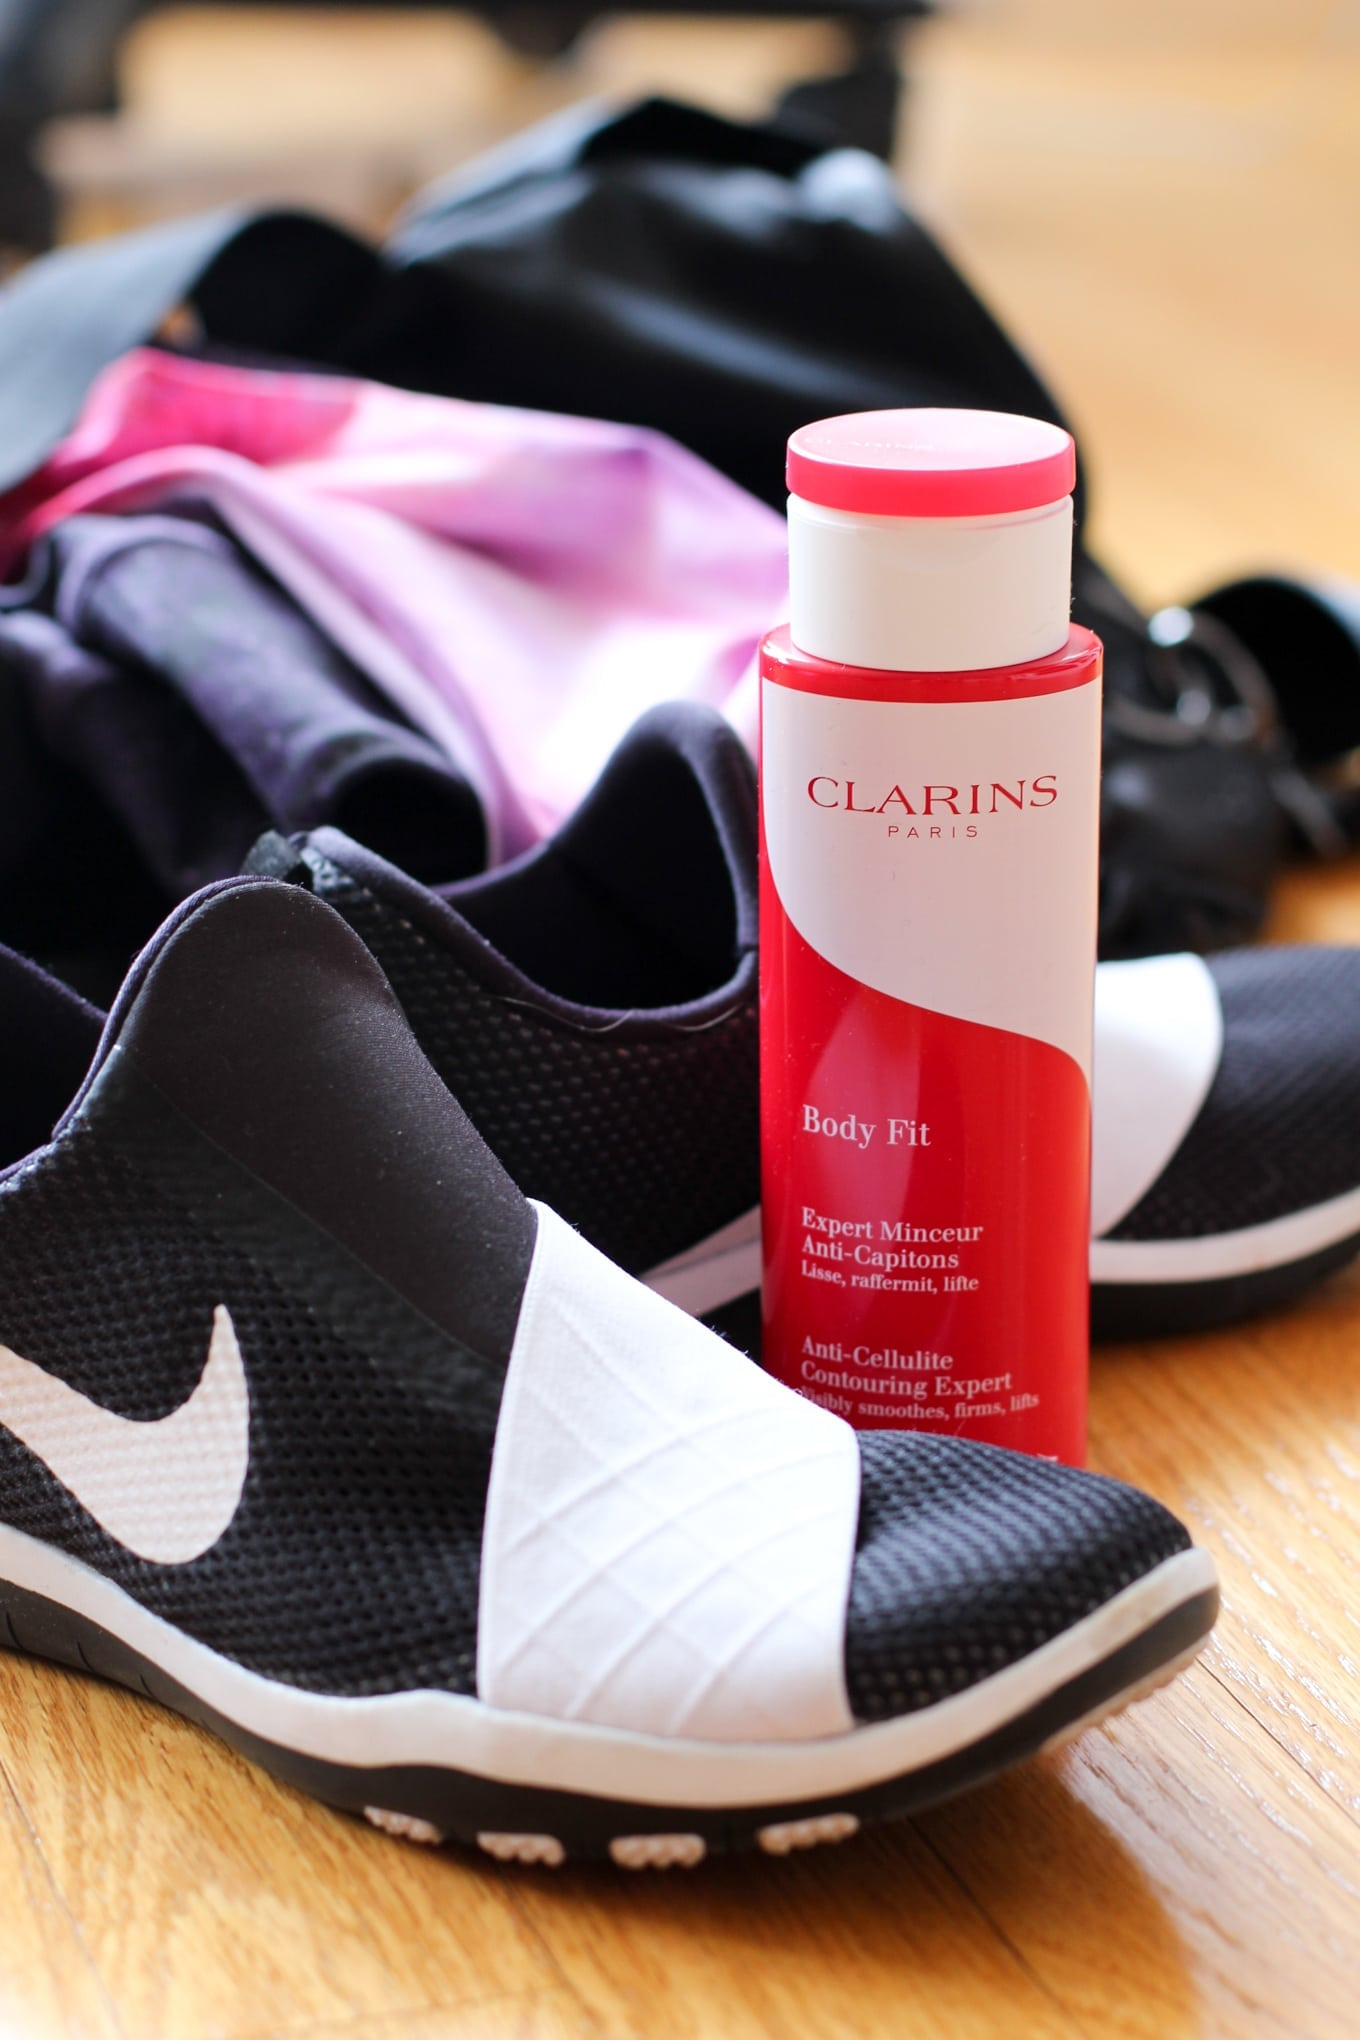 Clarins Body Fit - Lake Shore Lady